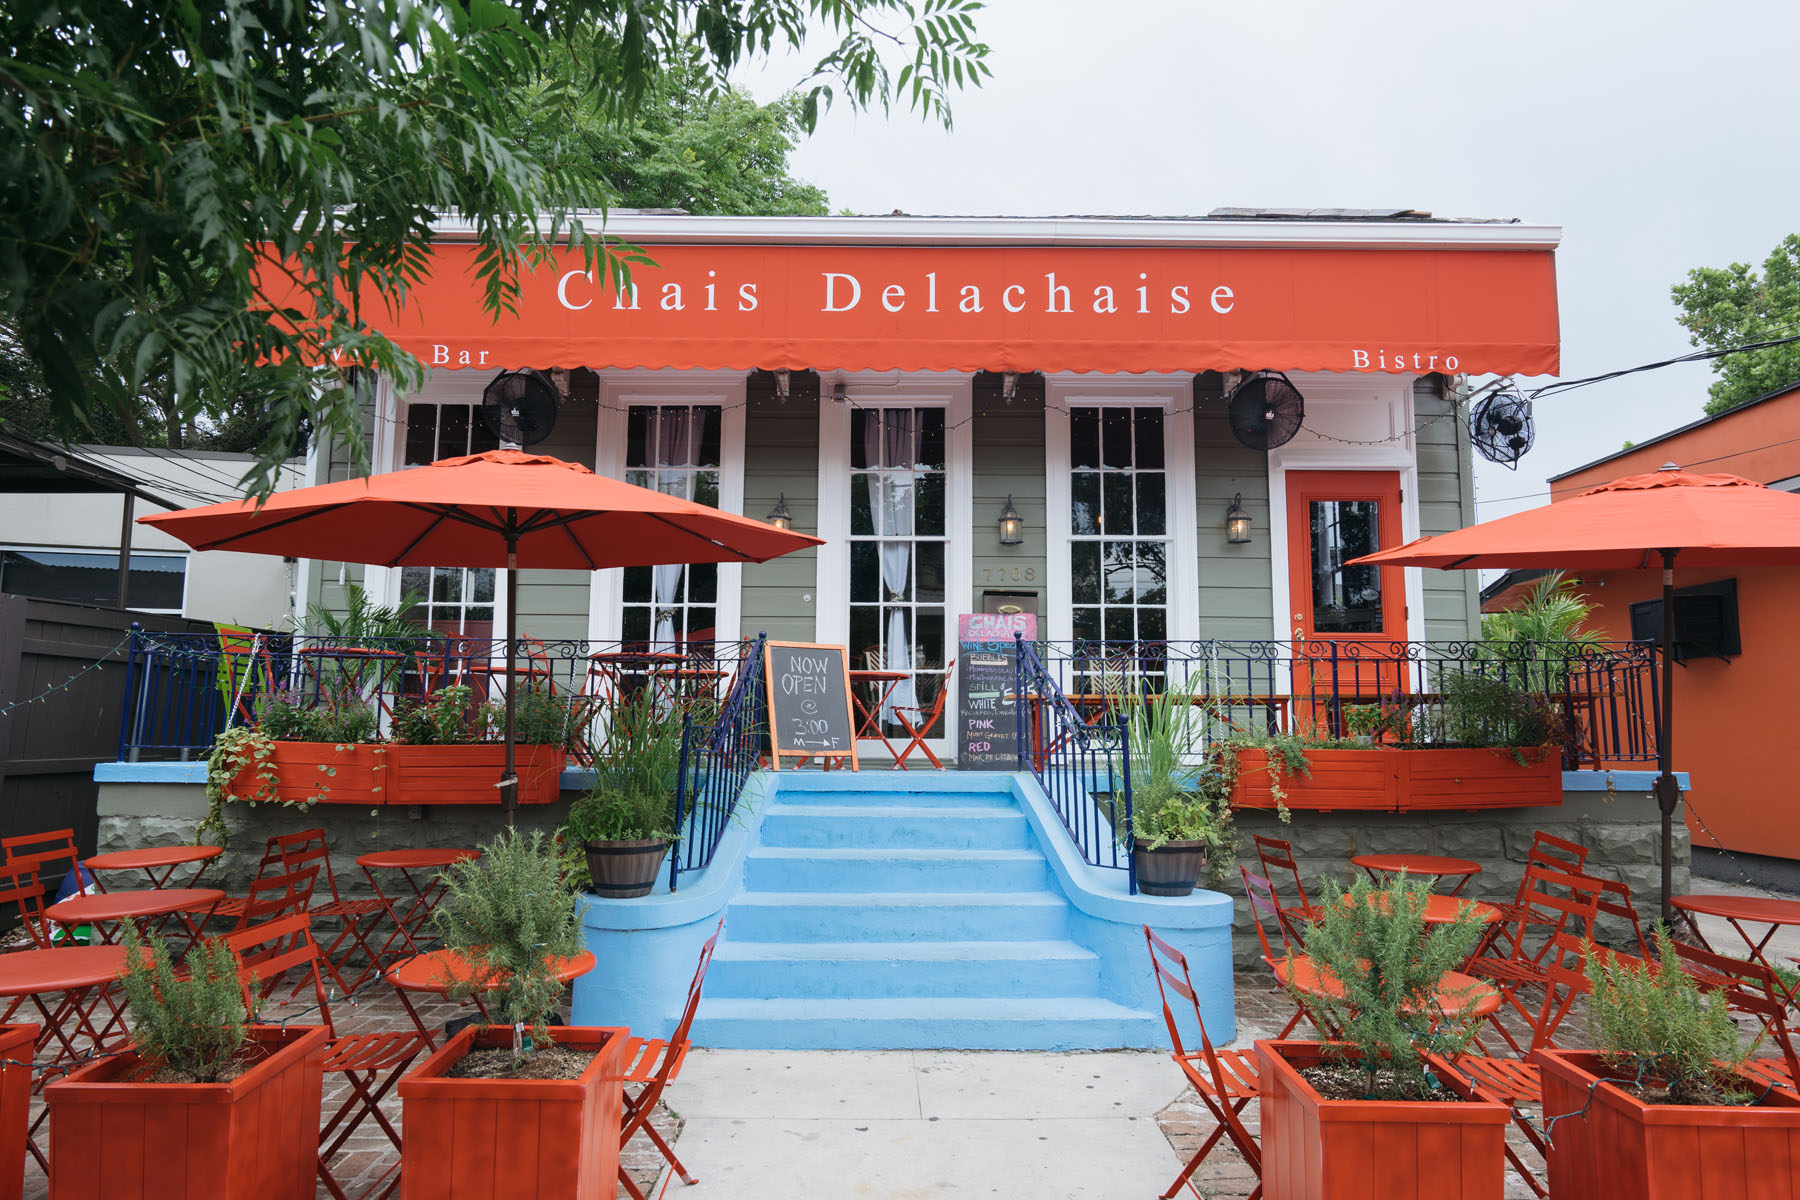 Pics outdoor dining in new orleans for Best restaurants in garden district new orleans